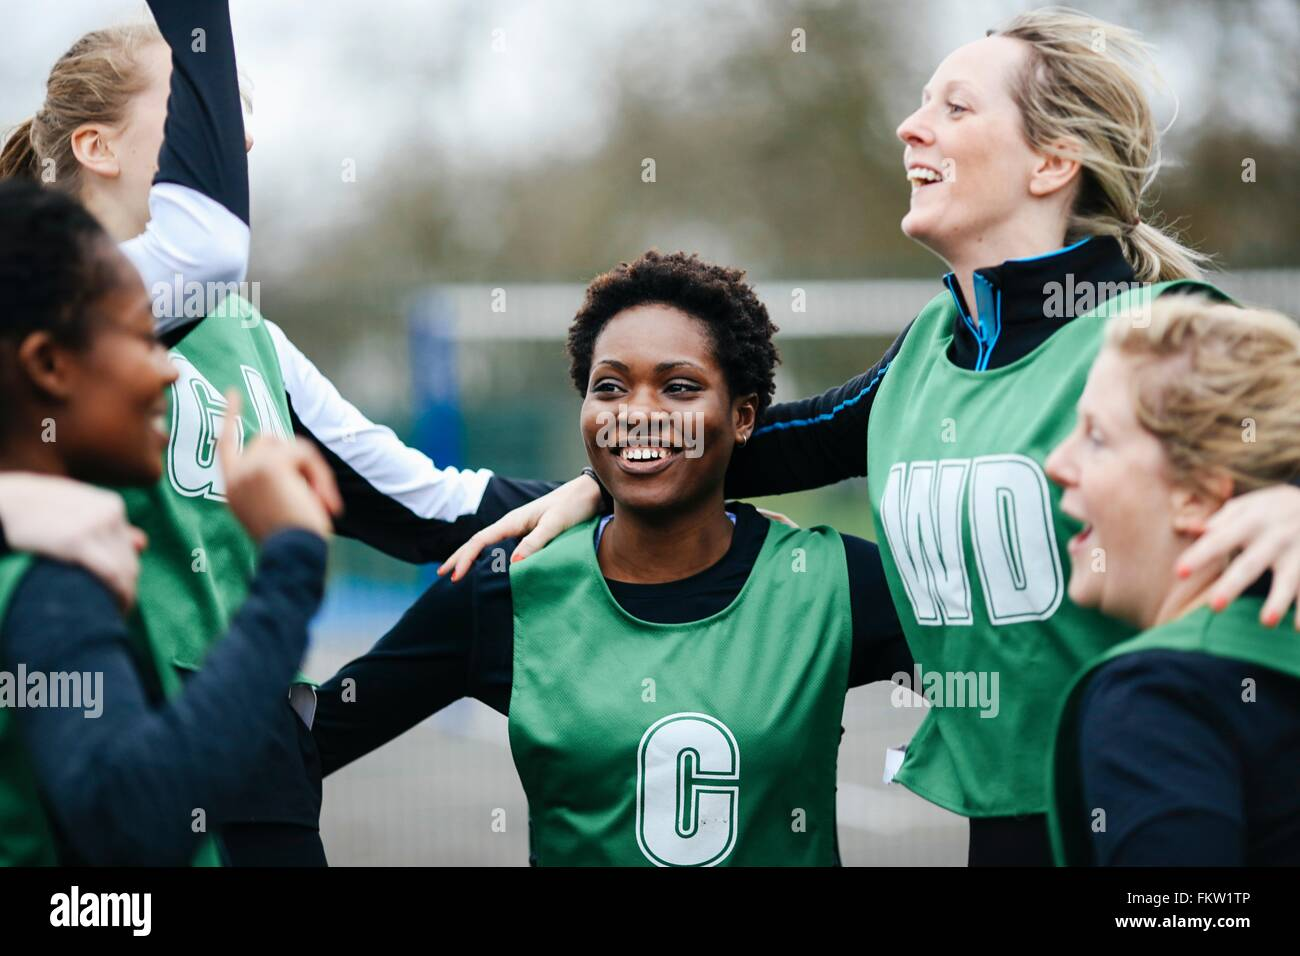 Female netball team celebrating win on netball court - Stock Image